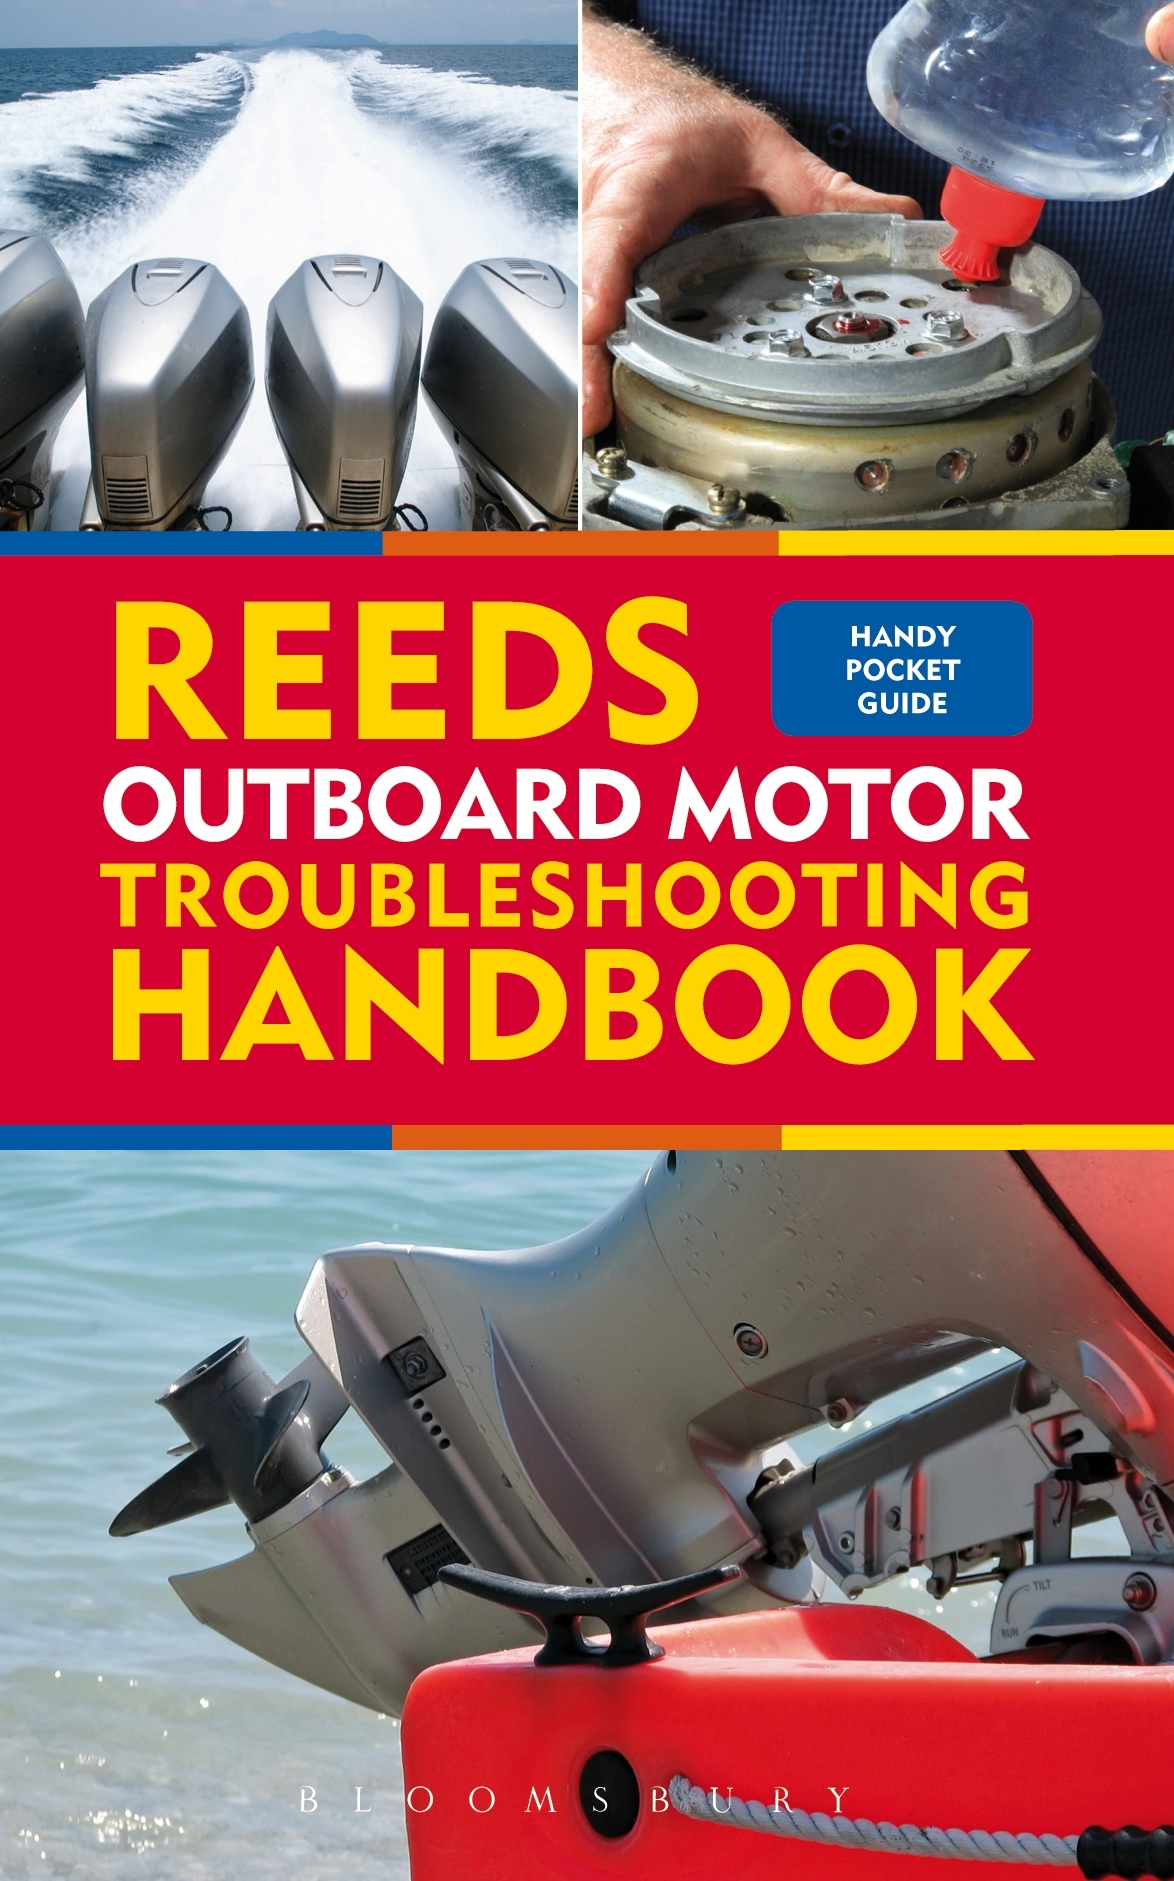 Reeds Outboard Motor Troubleshooting Handbook By: Barry Pickthall